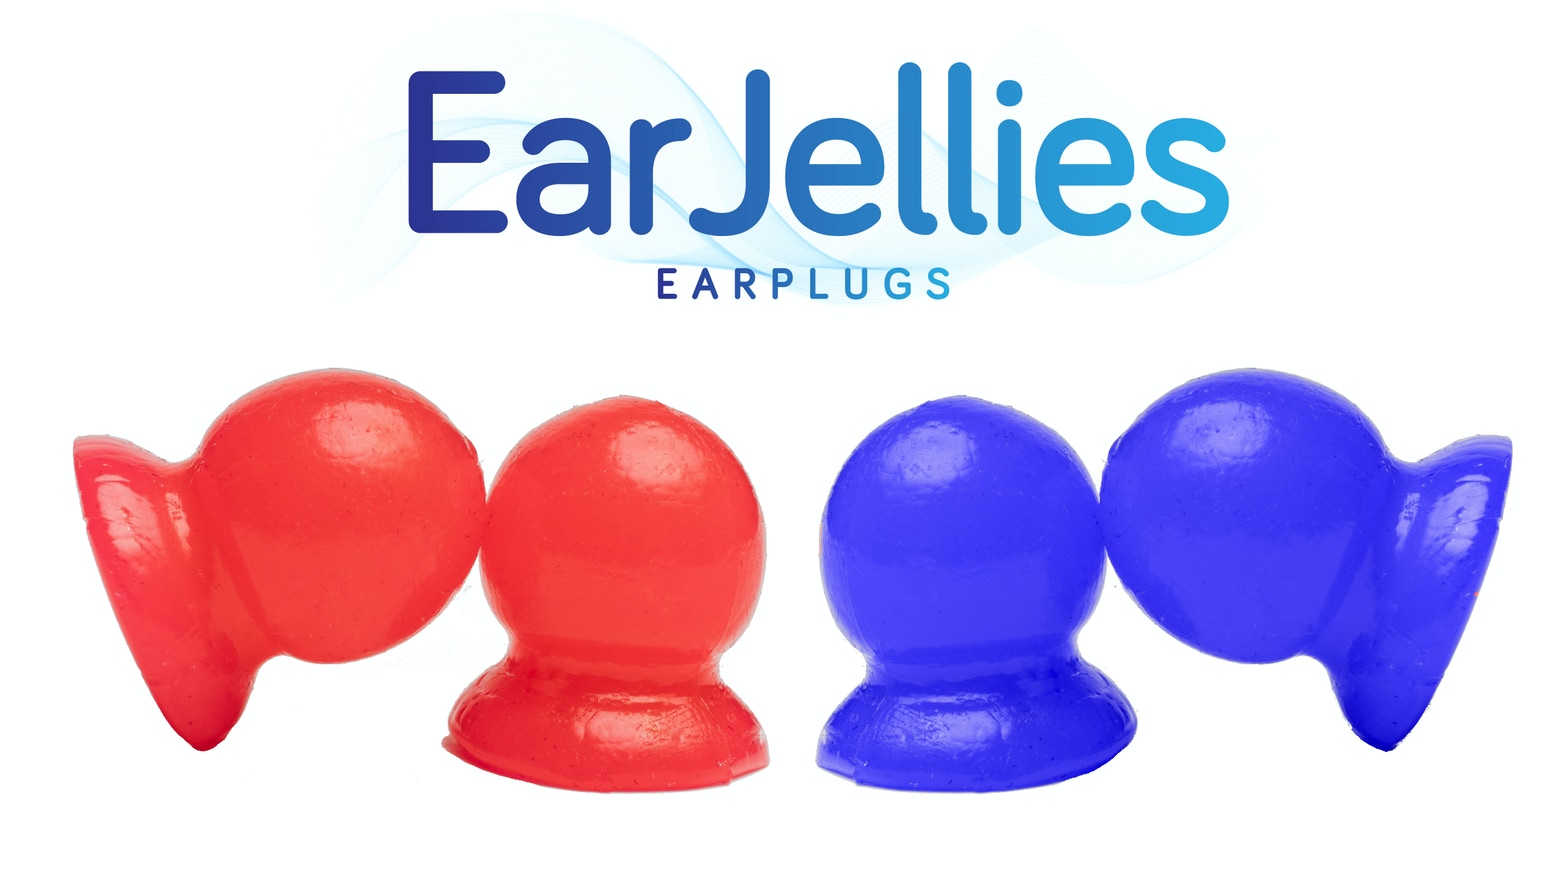 EarJellies are the World's first and only ear plugs made of MemorySil™ Viscoelastic Silicone! Ultra low pressure for maximum comfort!